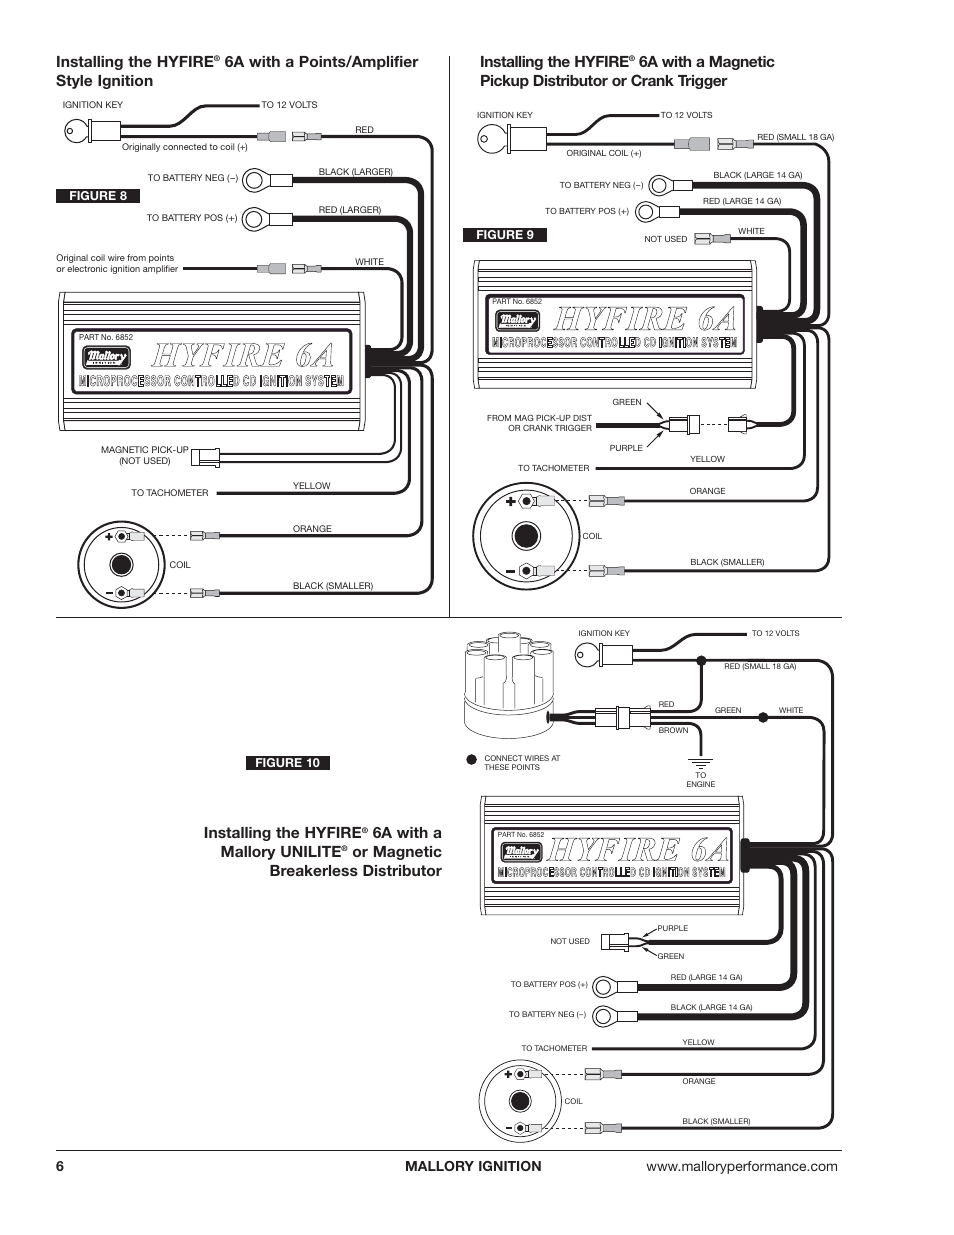 mallory hyfire 6al wiring diagram for heimallory comp 9000 distributor to  msd ignition wiring mallory ignition